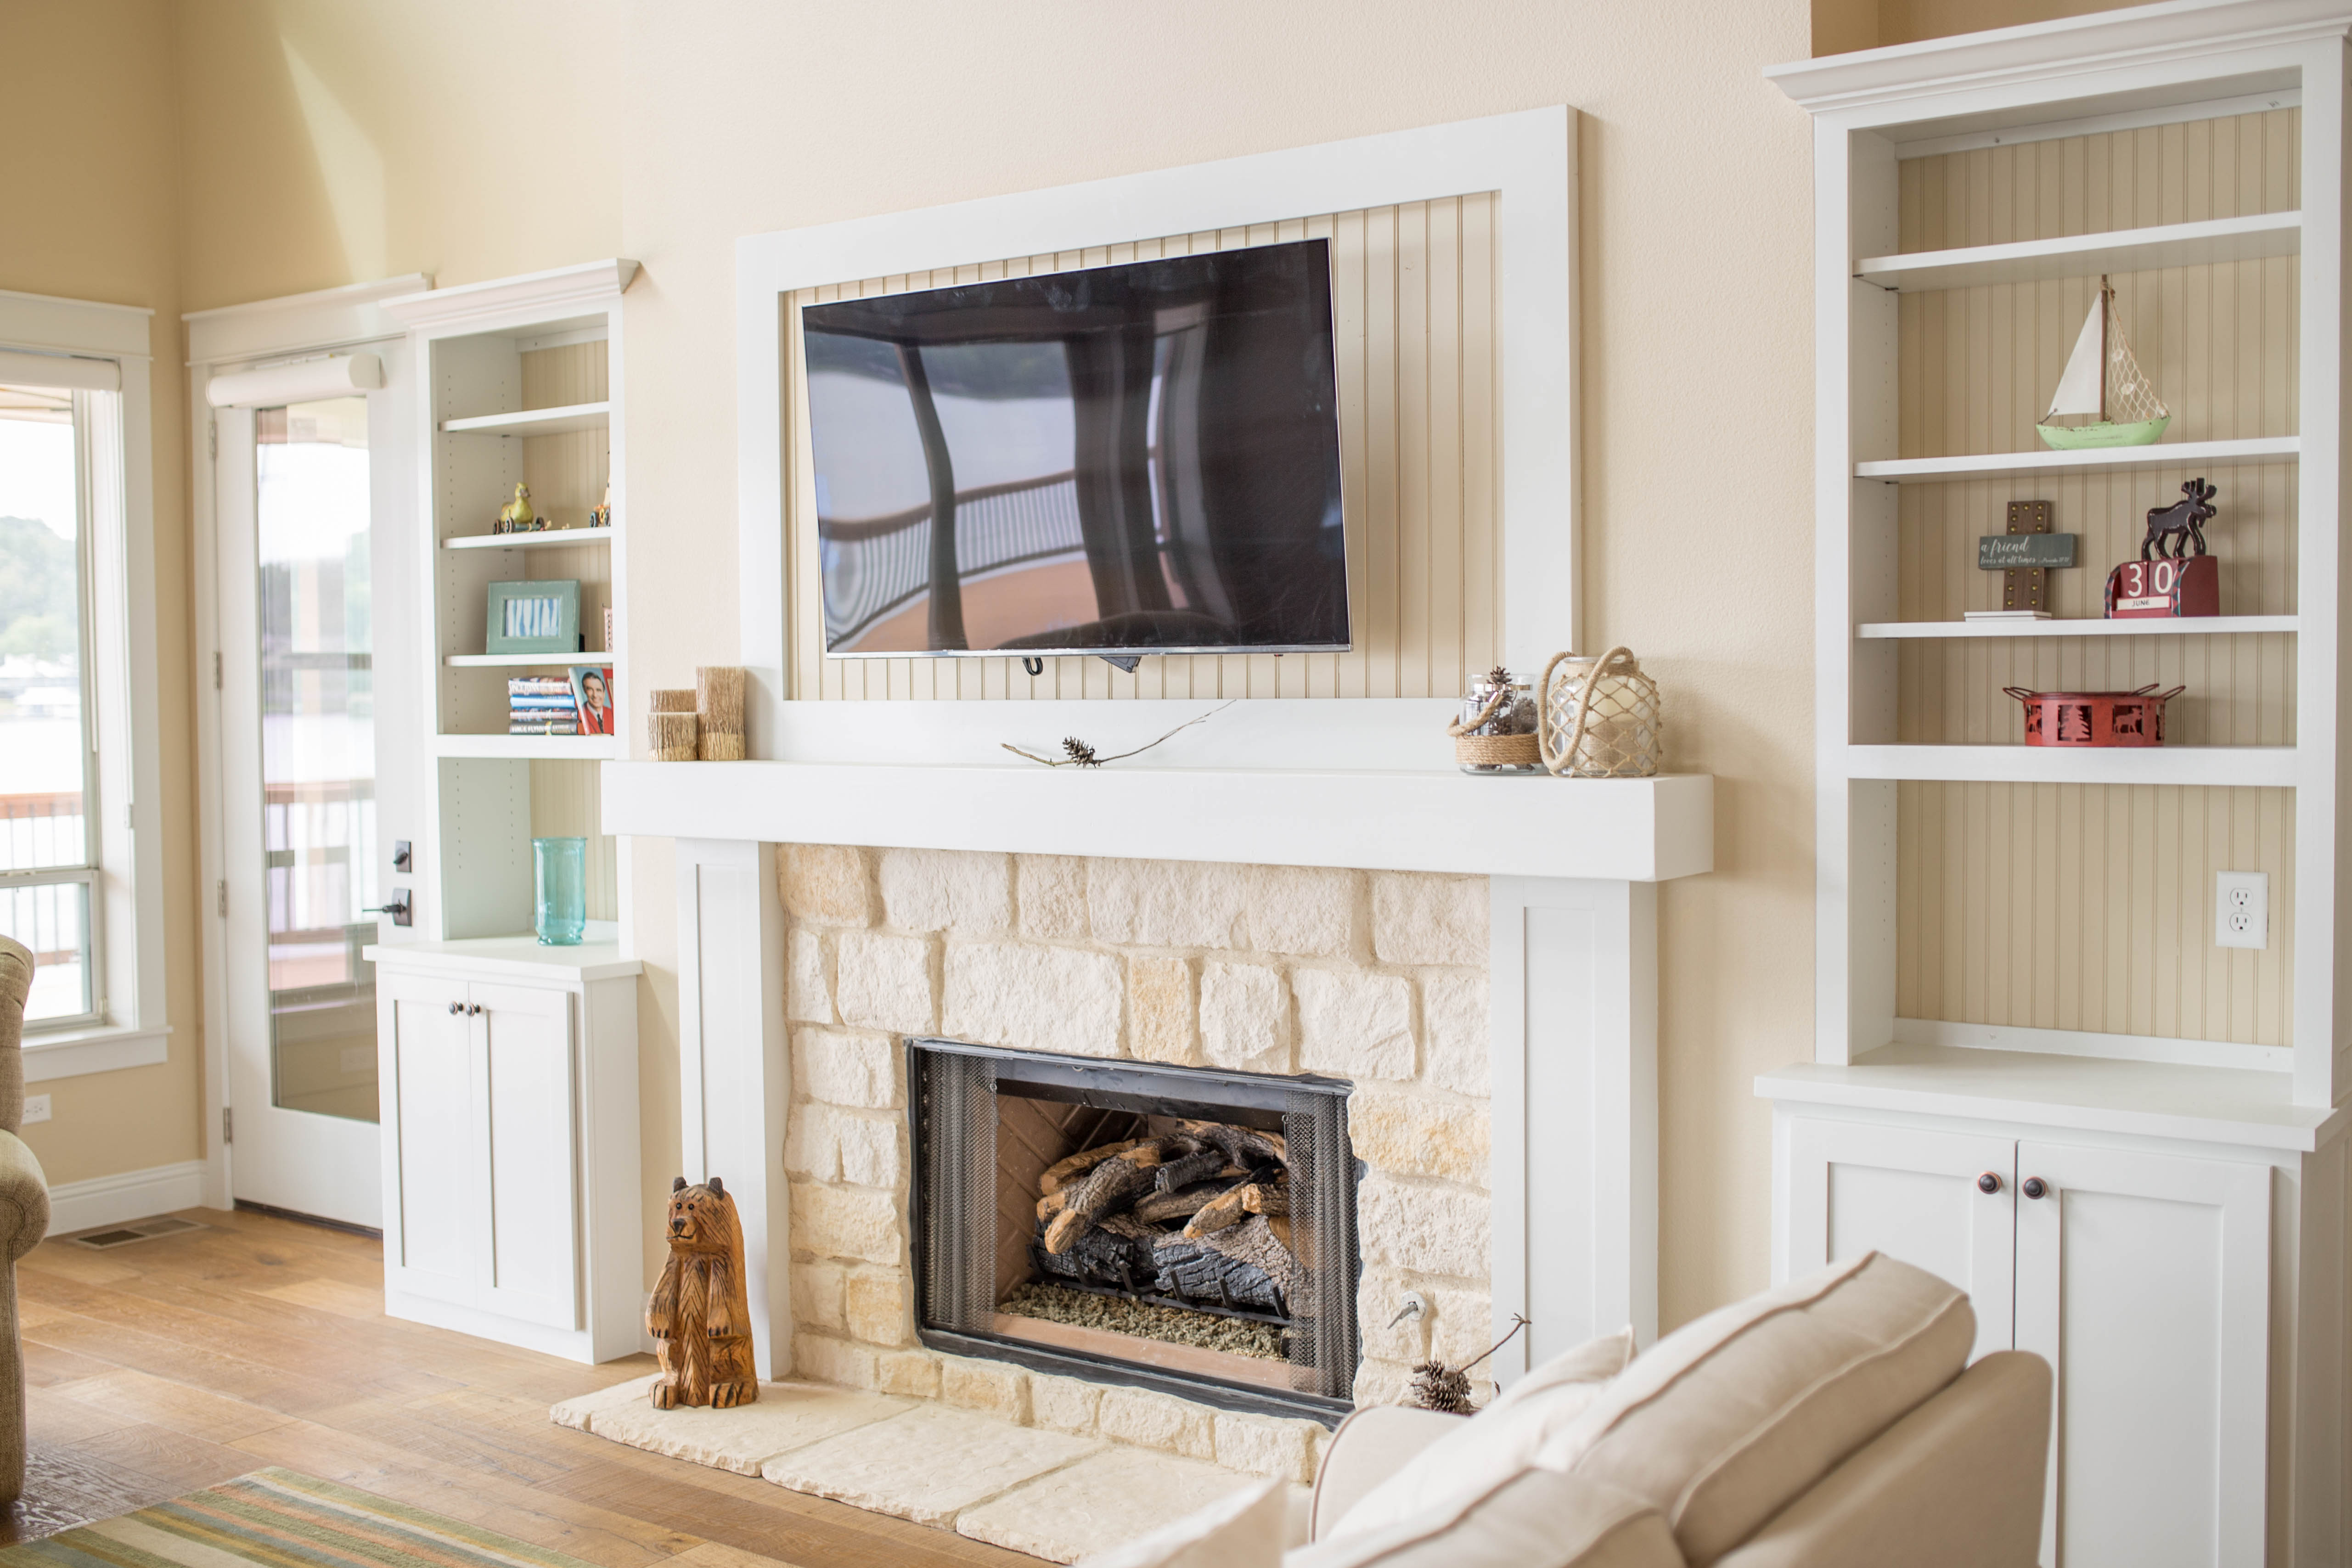 Custom Fireplace Mantle and Built-in